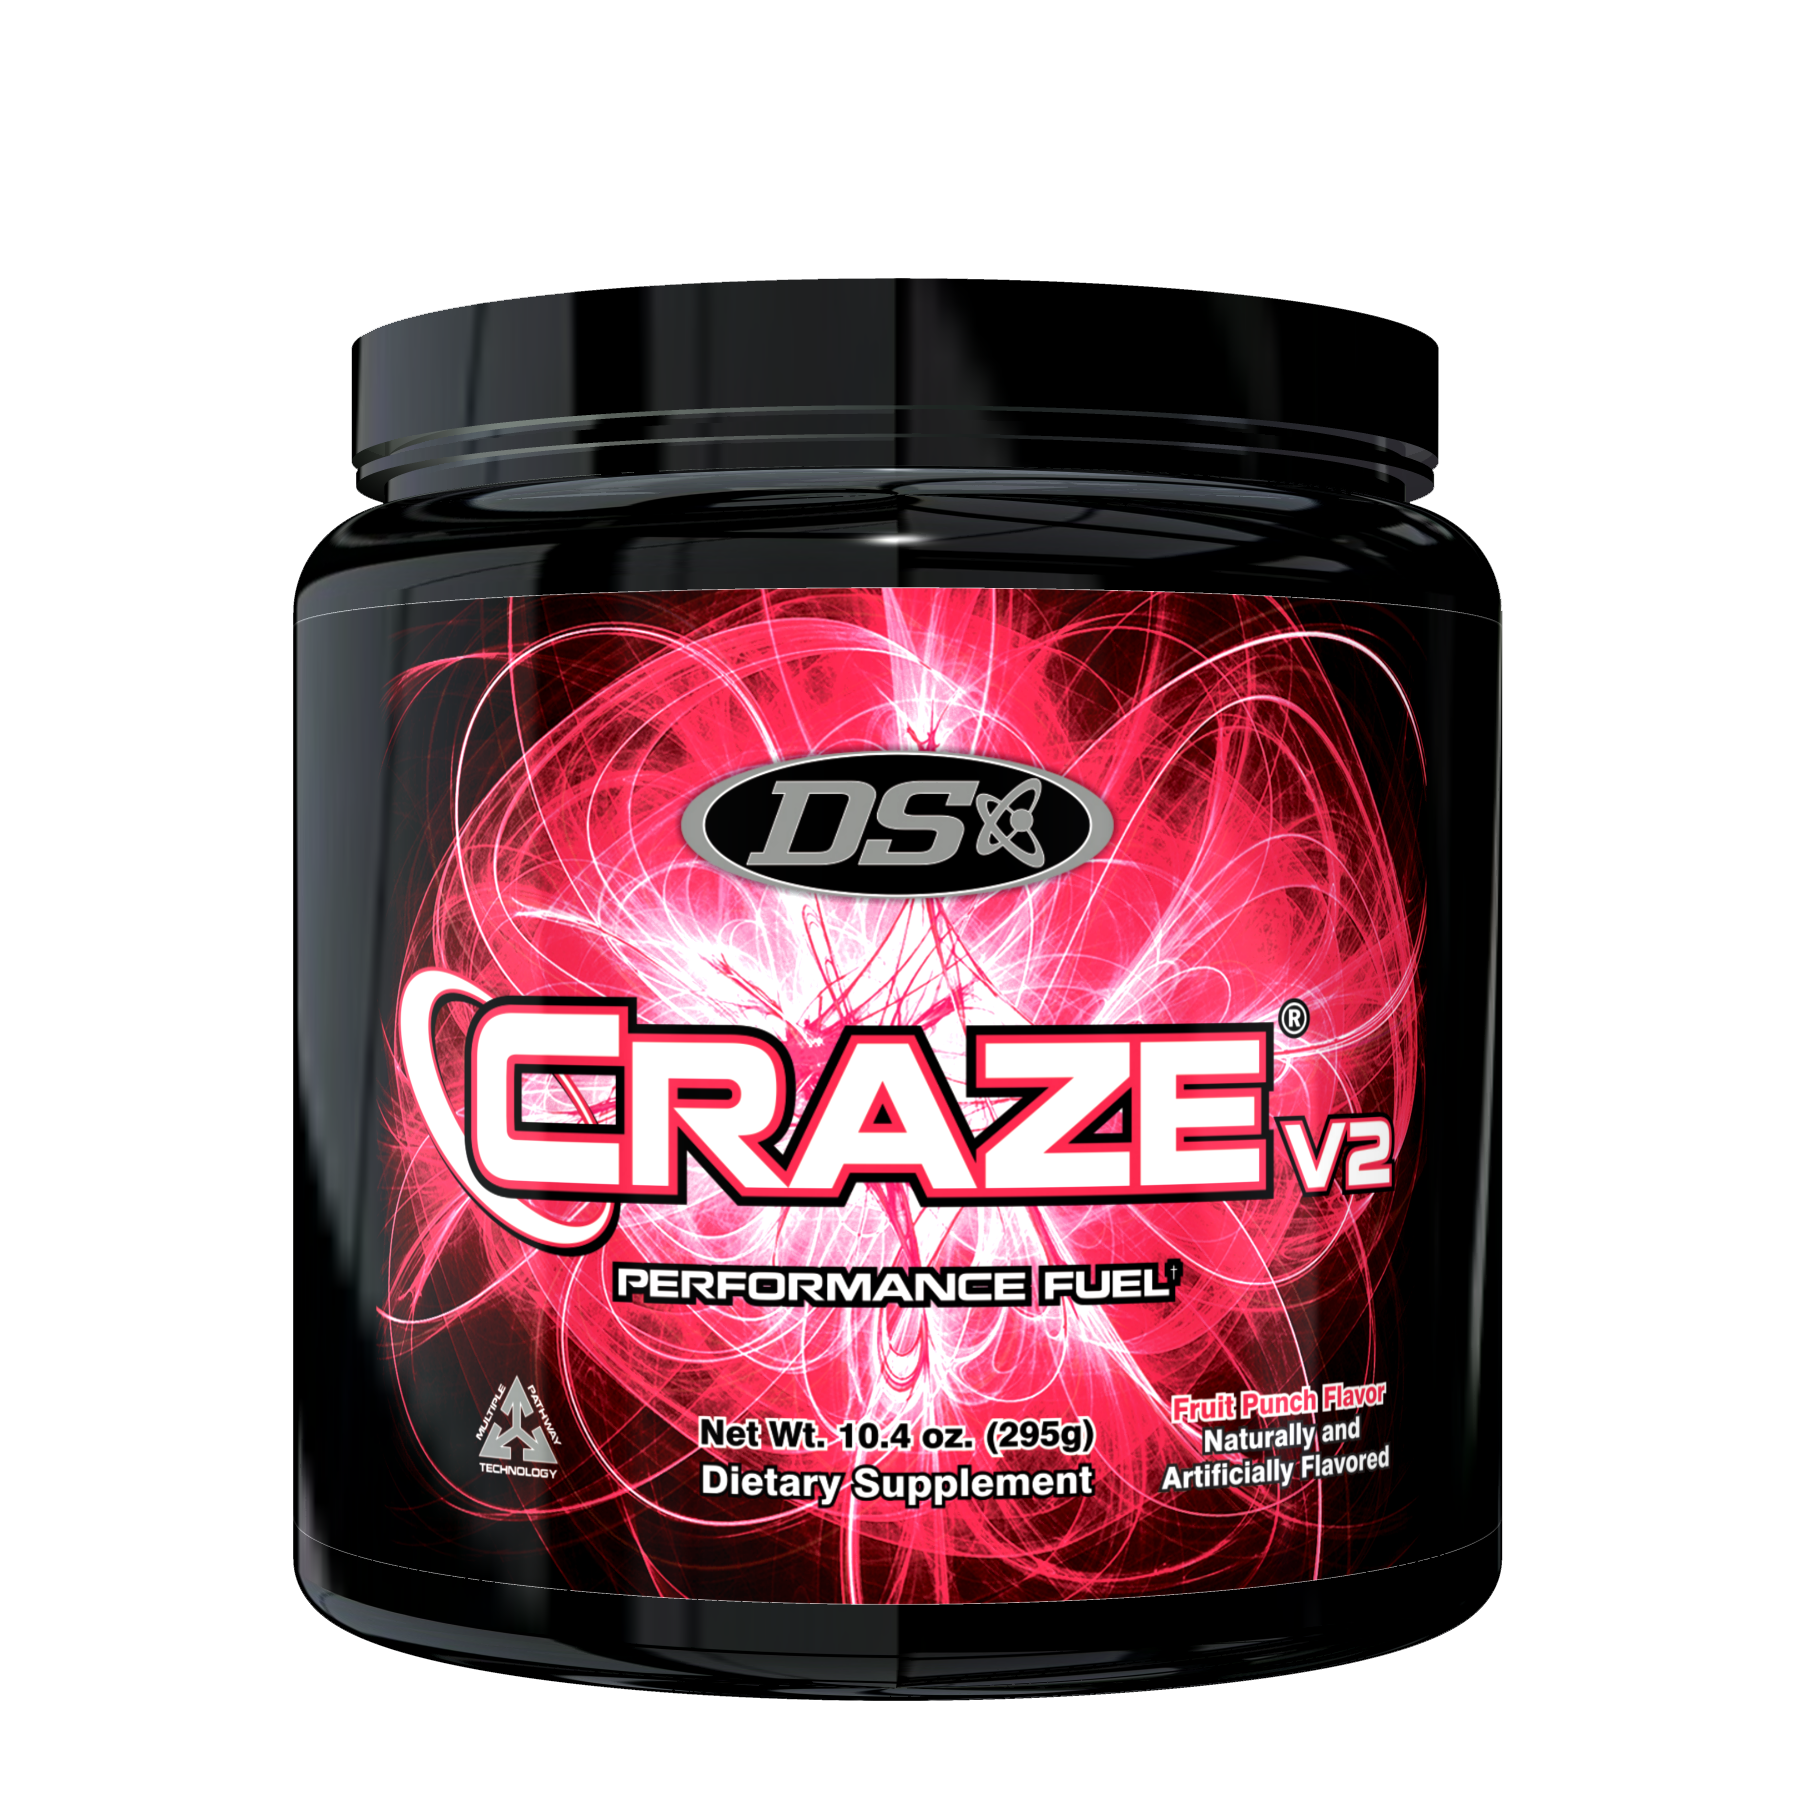 Craze V Juggernaut Pre Workout